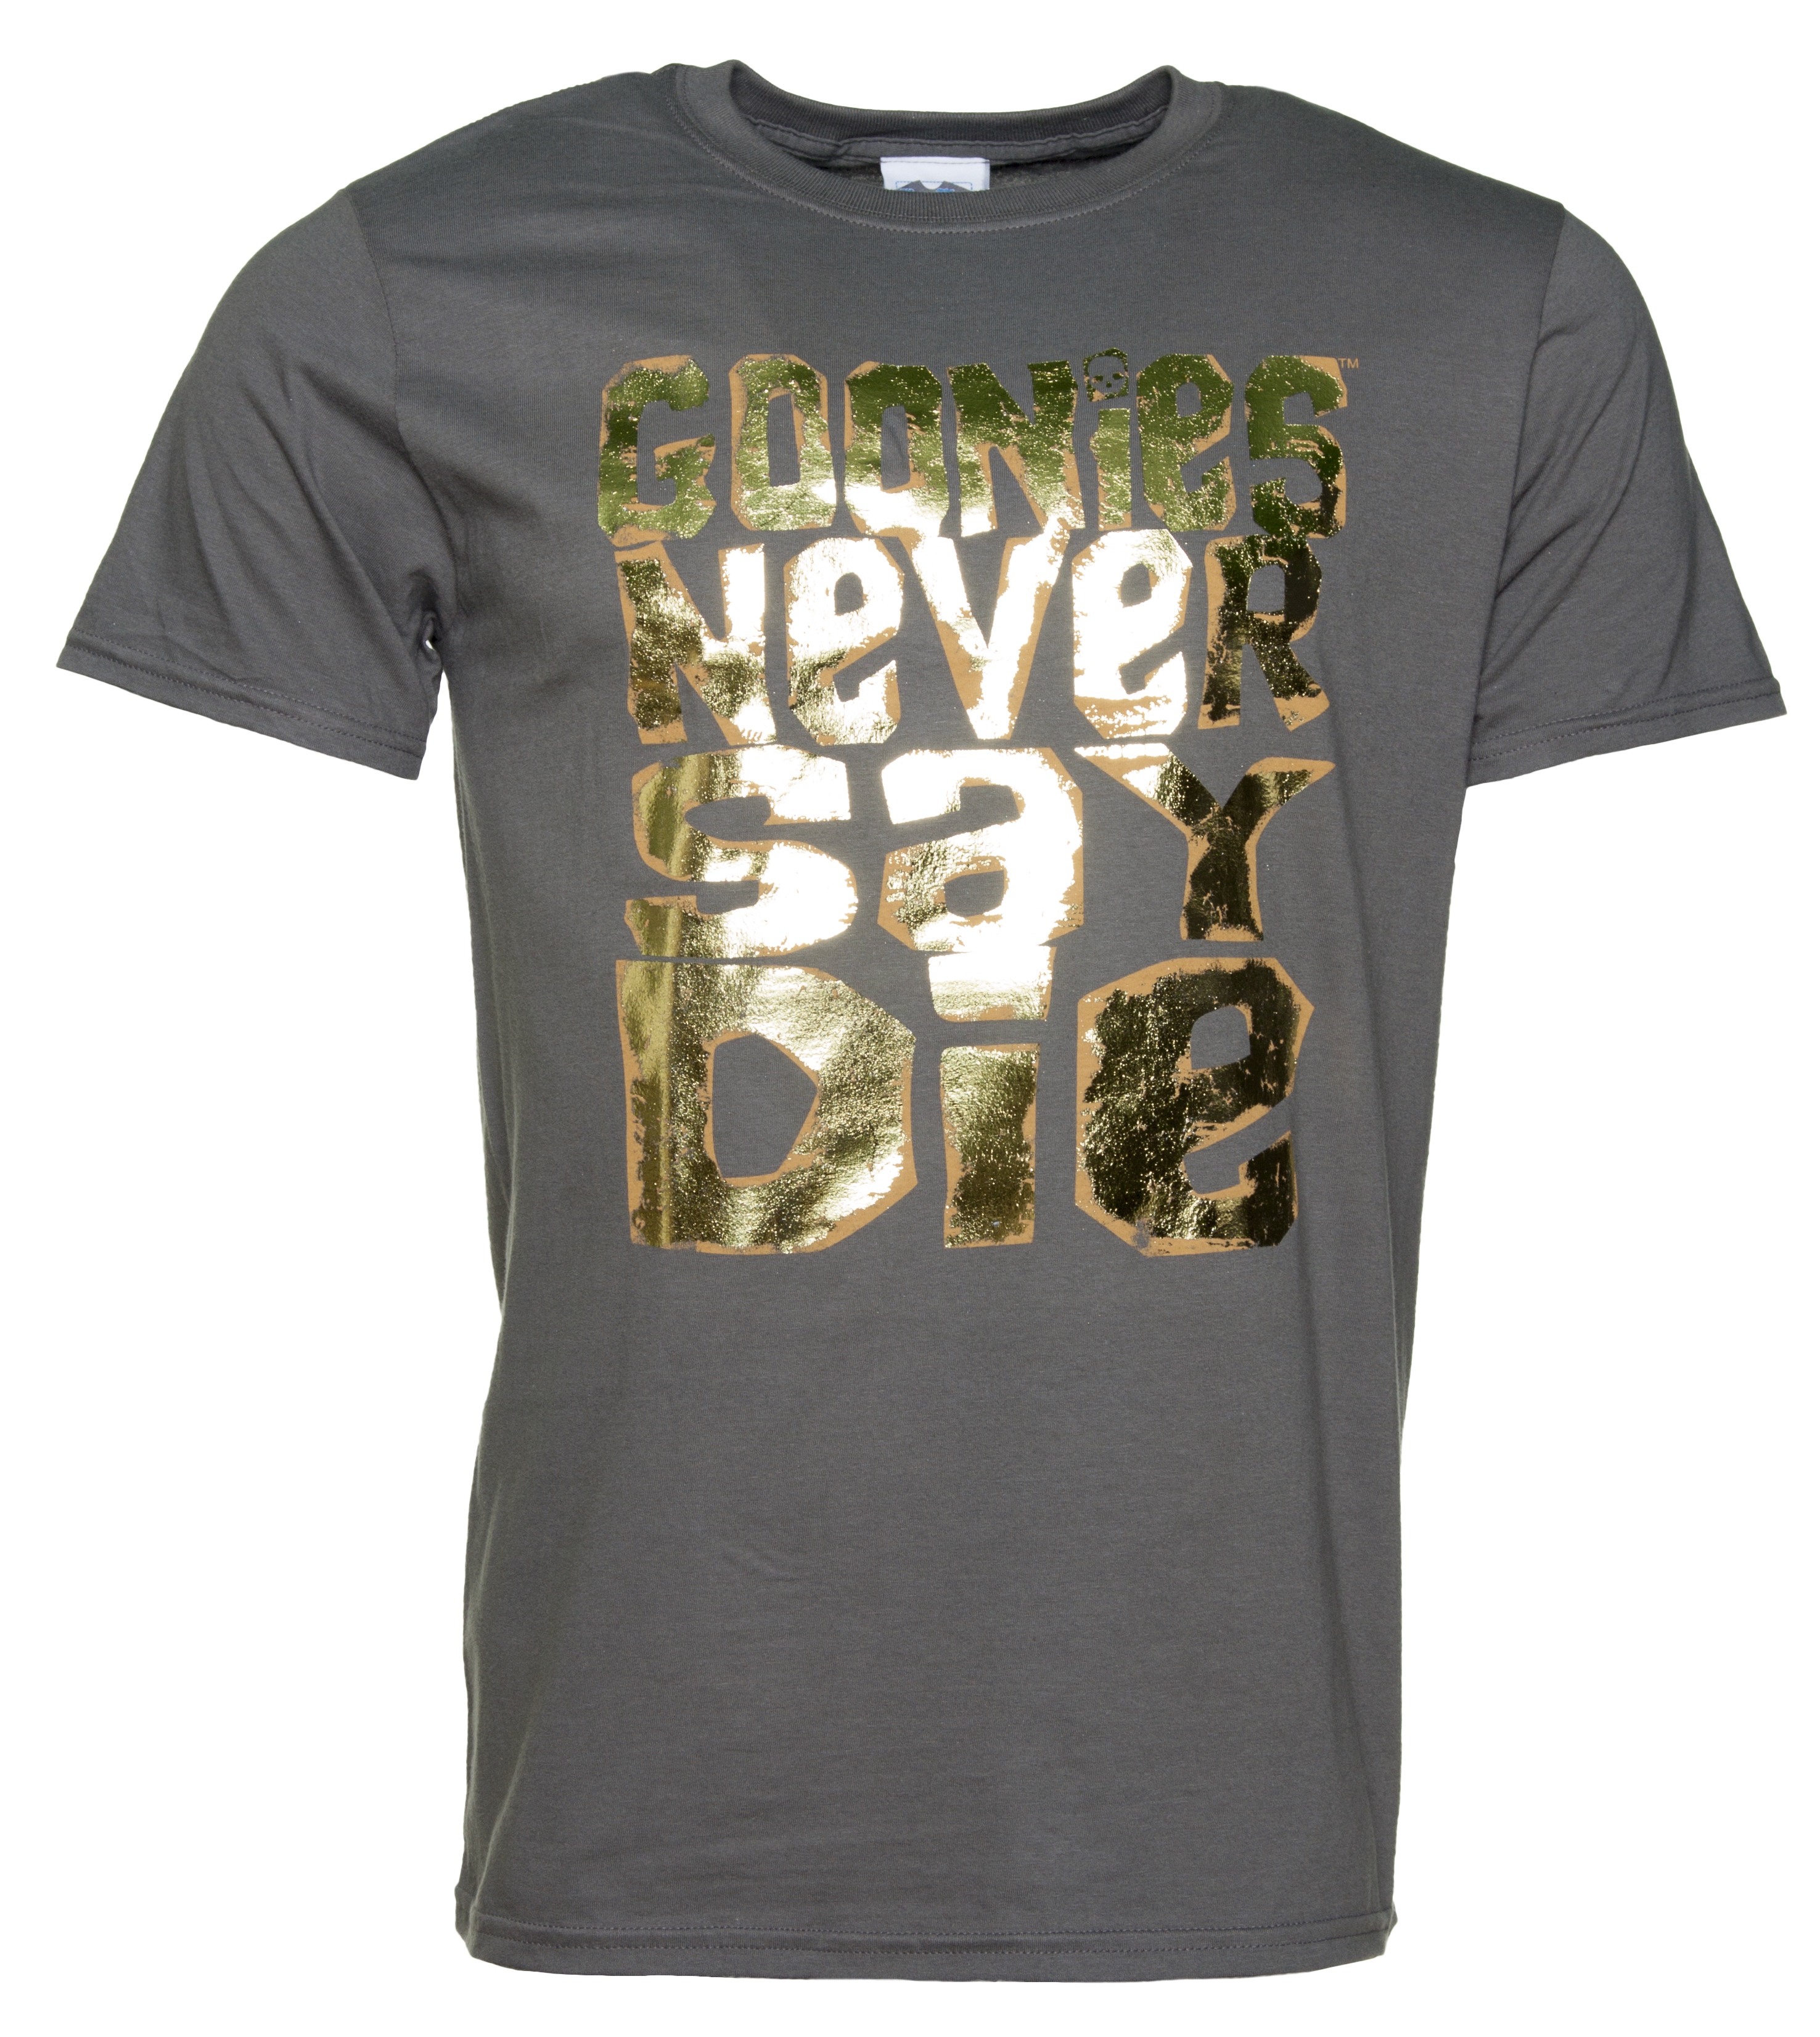 Black t shirt gold print - Men S Gold Foil Print Goonies Never Say Die Charcoal T Shirt Intentionally Distressed Screen Print For A Vintage Look Features A Special Metallic Gold